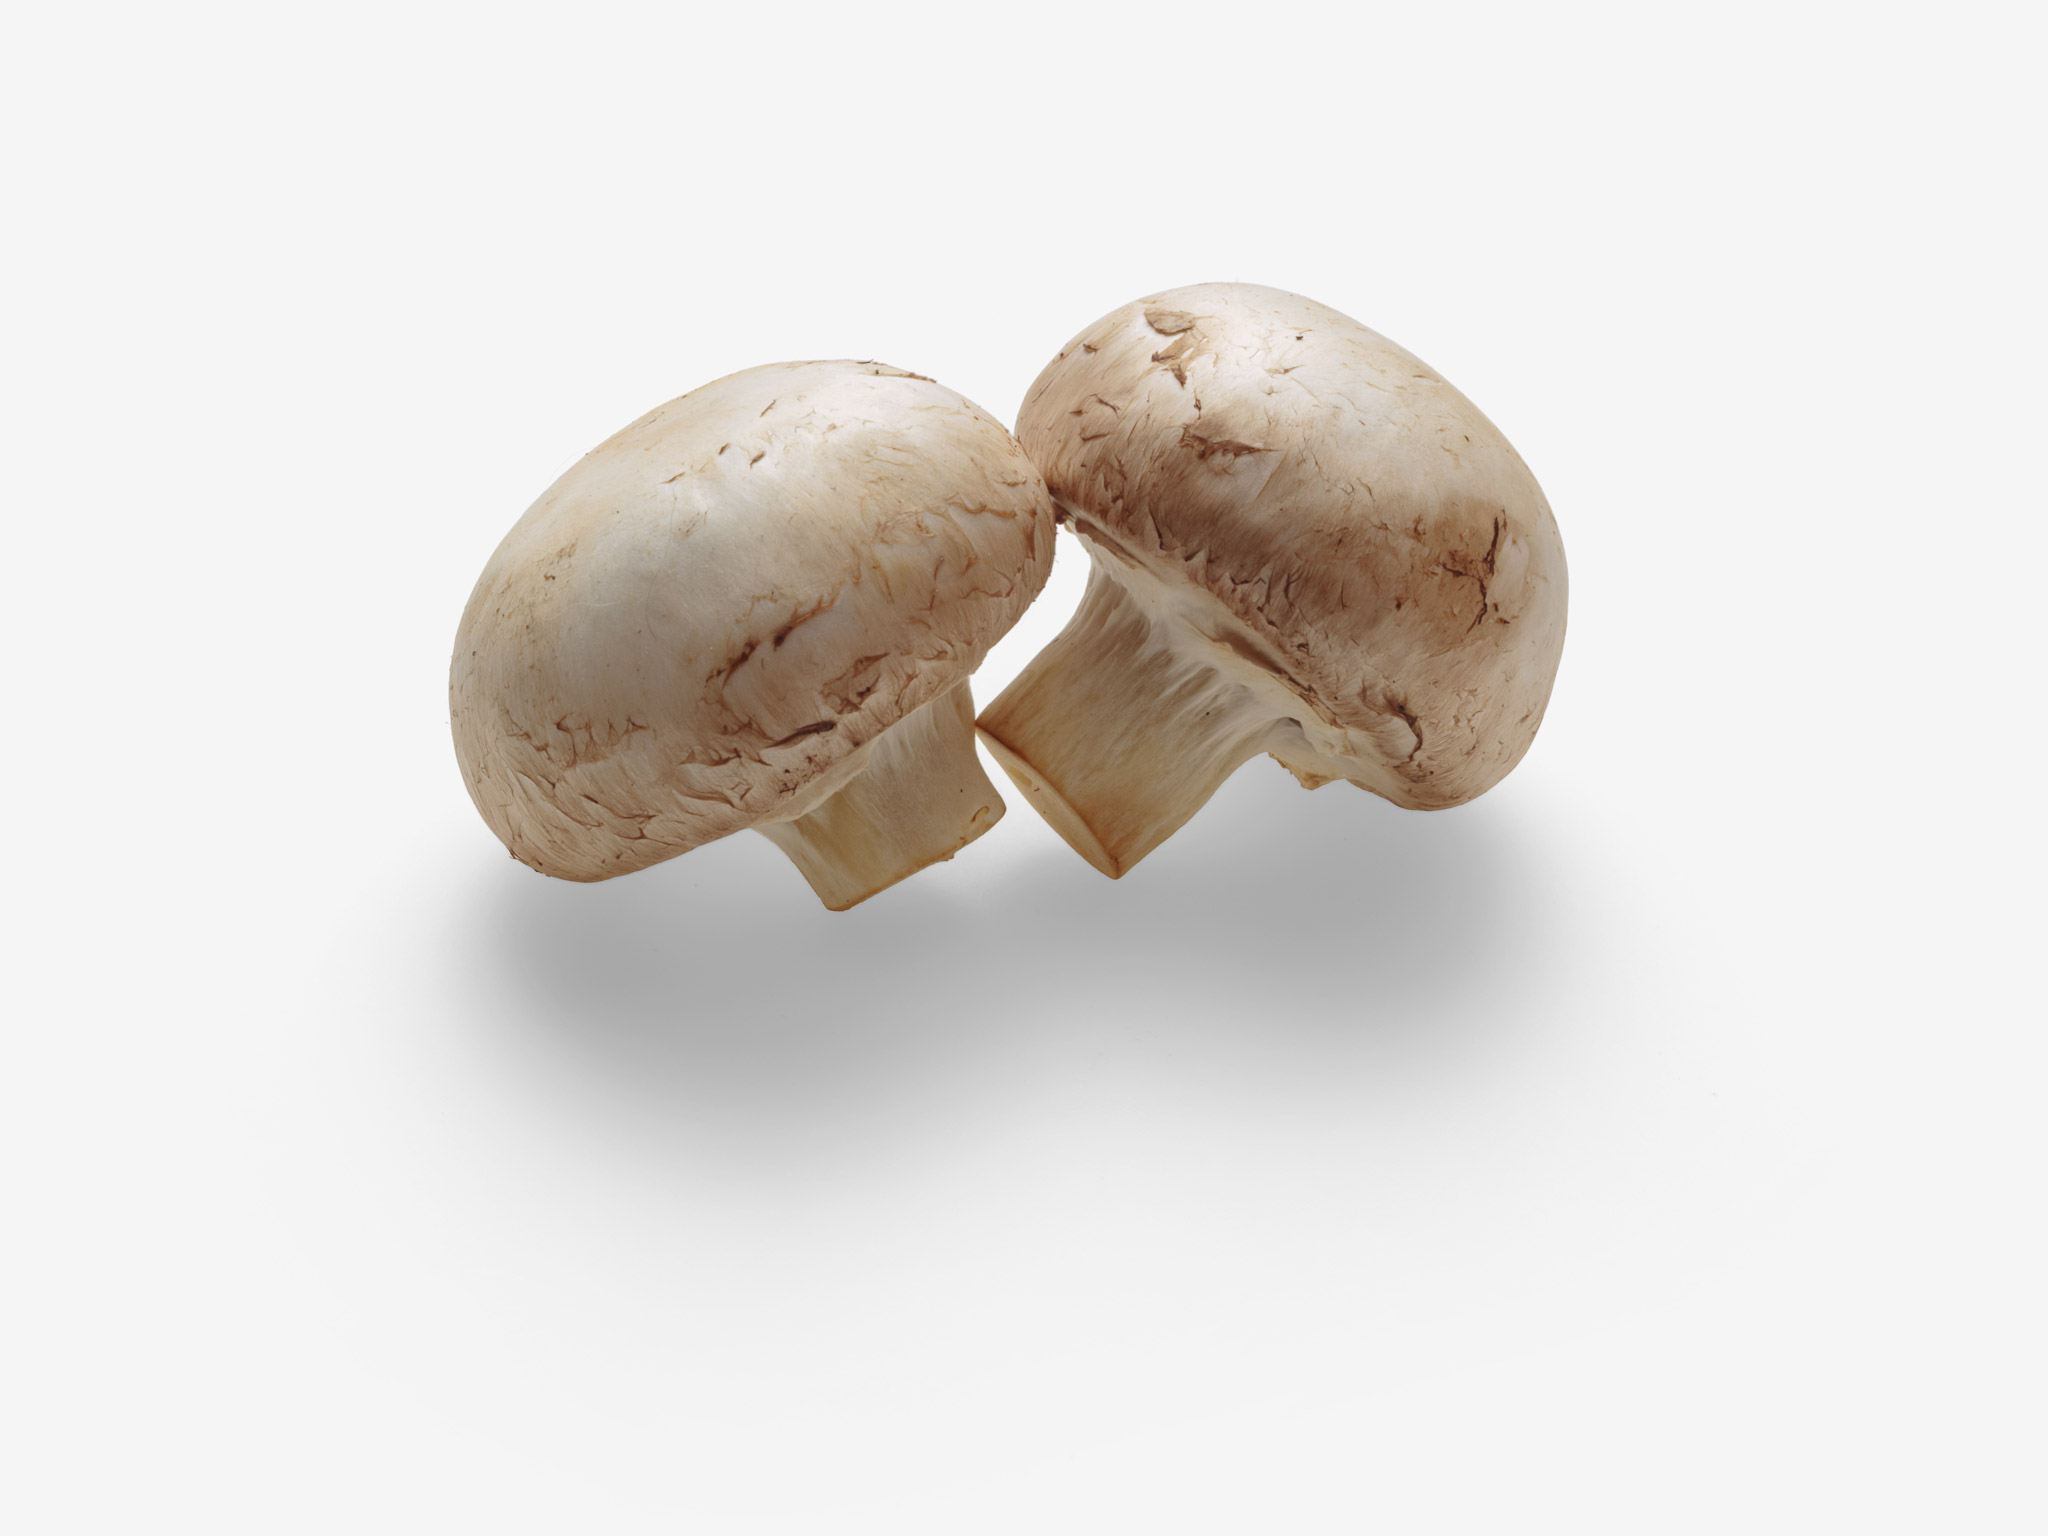 Champignon PSD image with transparent background